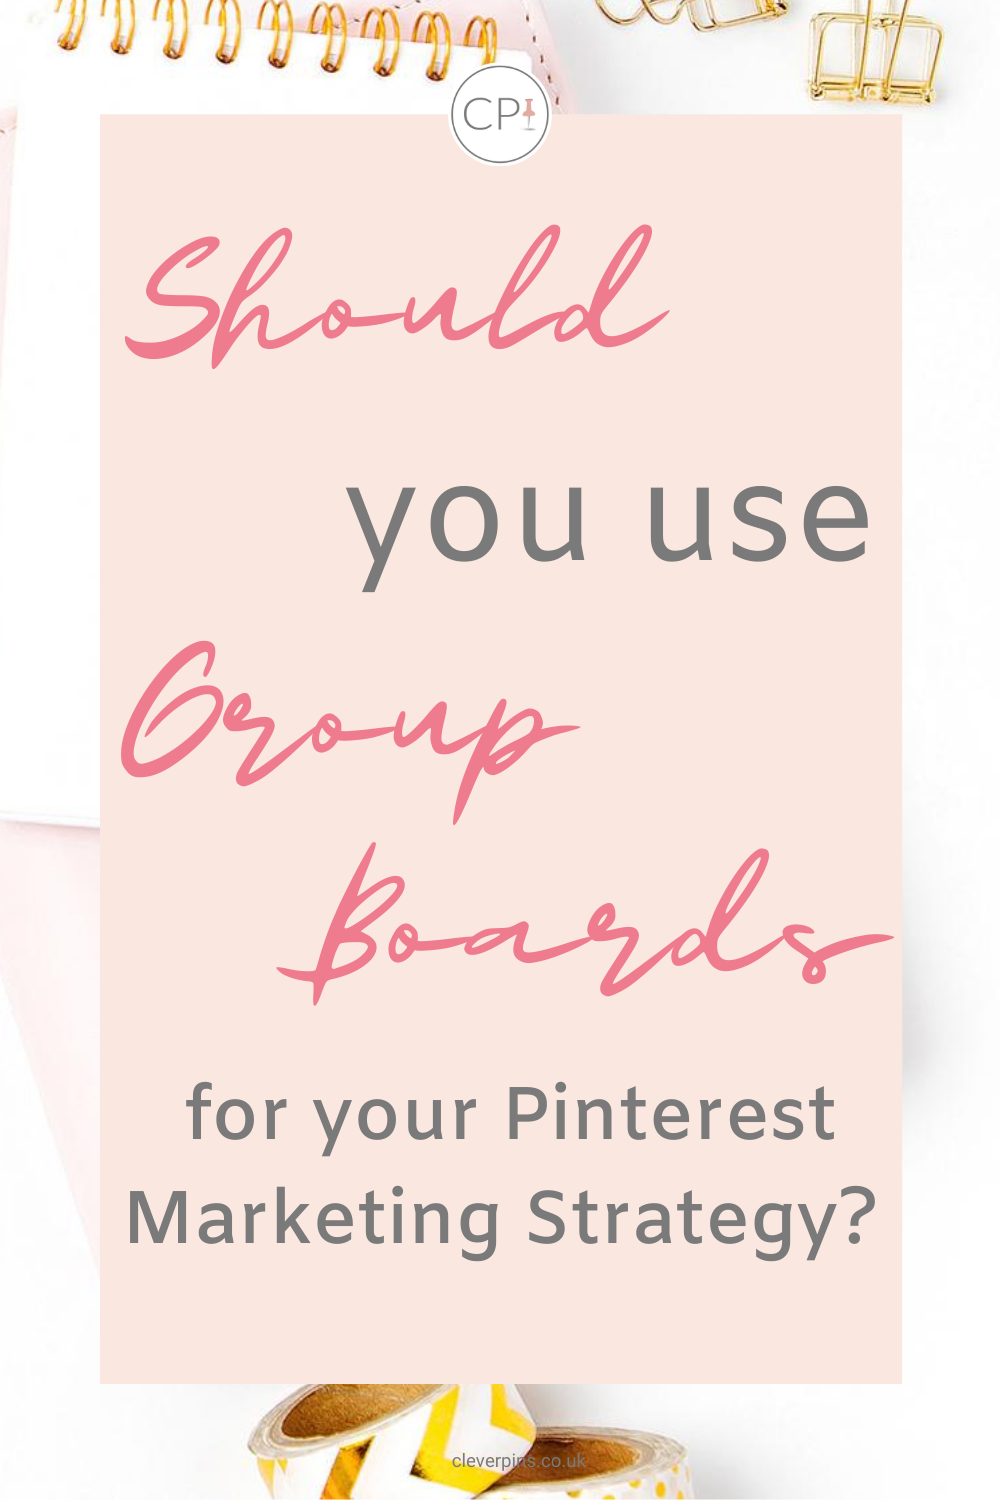 Should you use Pinterest group boards for your Pinterest marketing strategy?